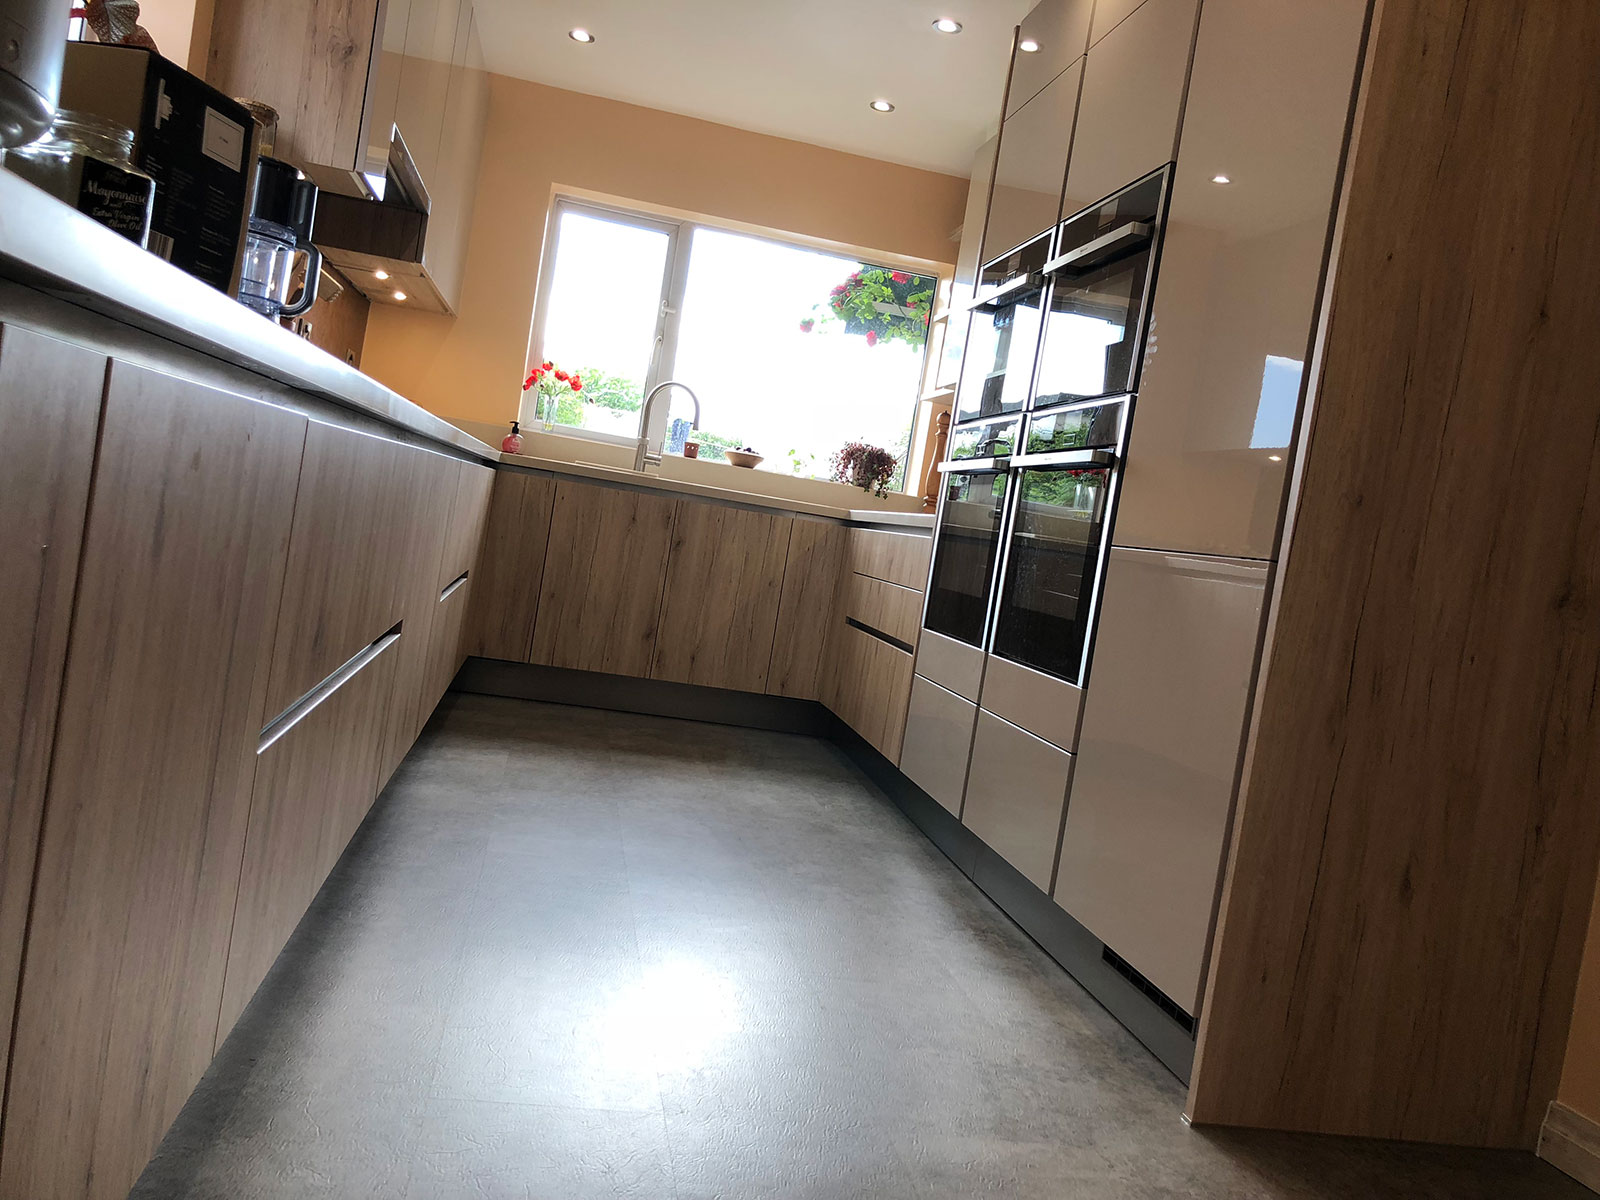 handless fitted kitchen In Scholes west Yorkshire